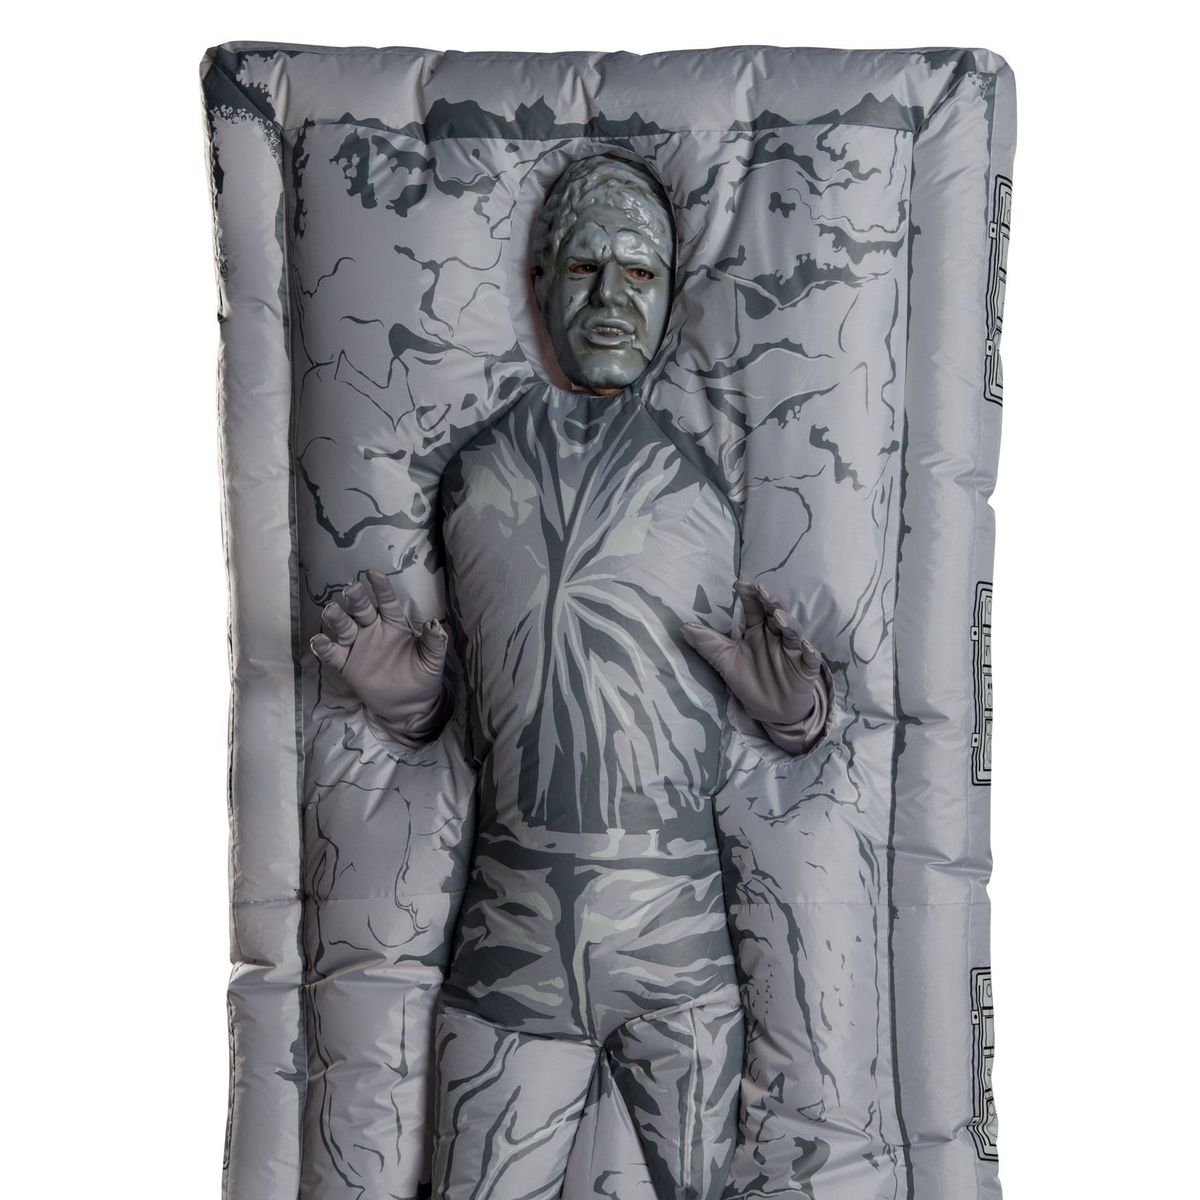 Han Solo Carbonite costume